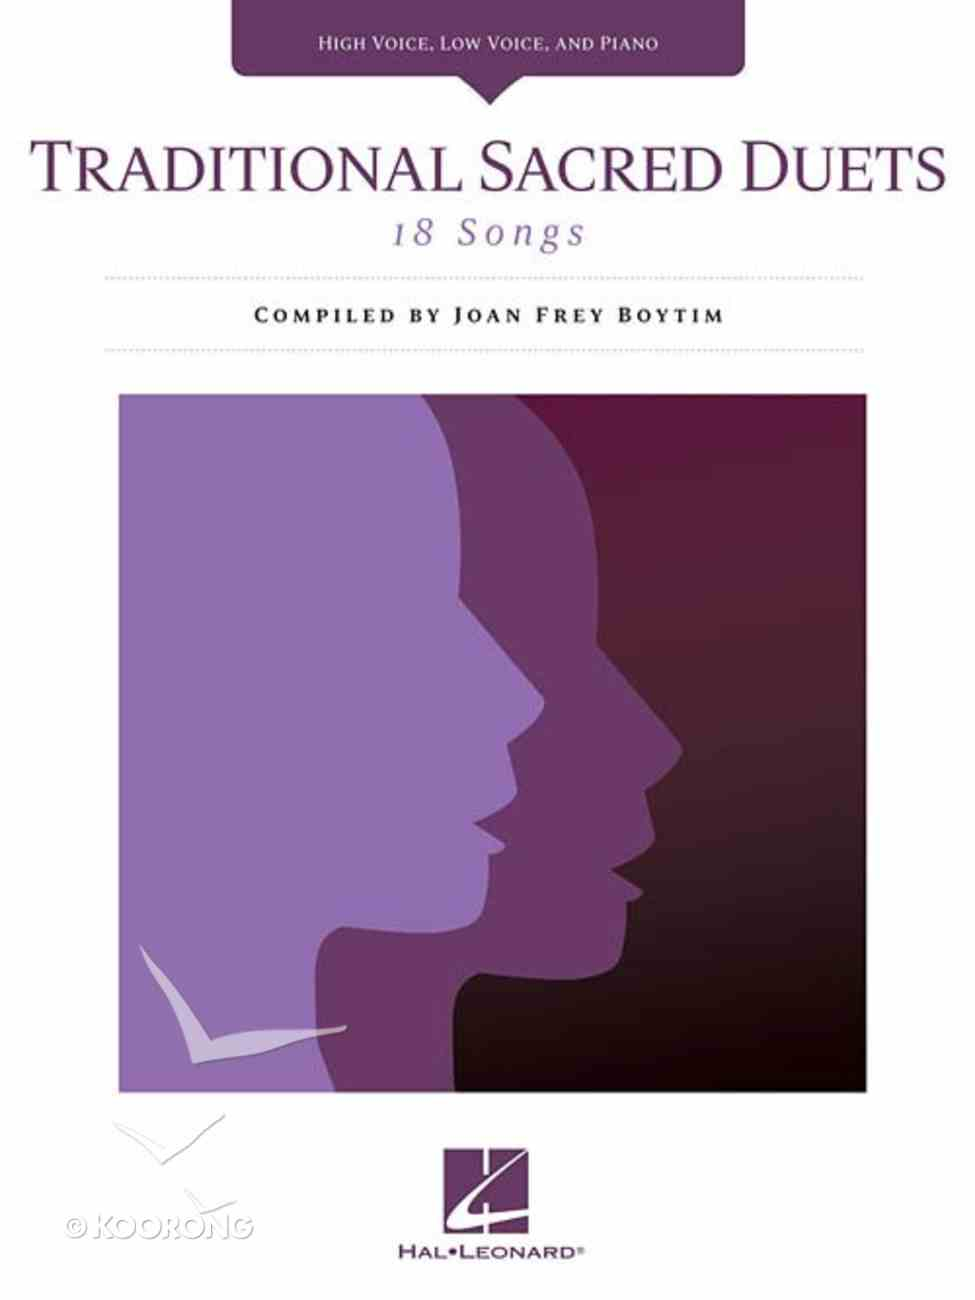 Traditional Sacred Duets Paperback